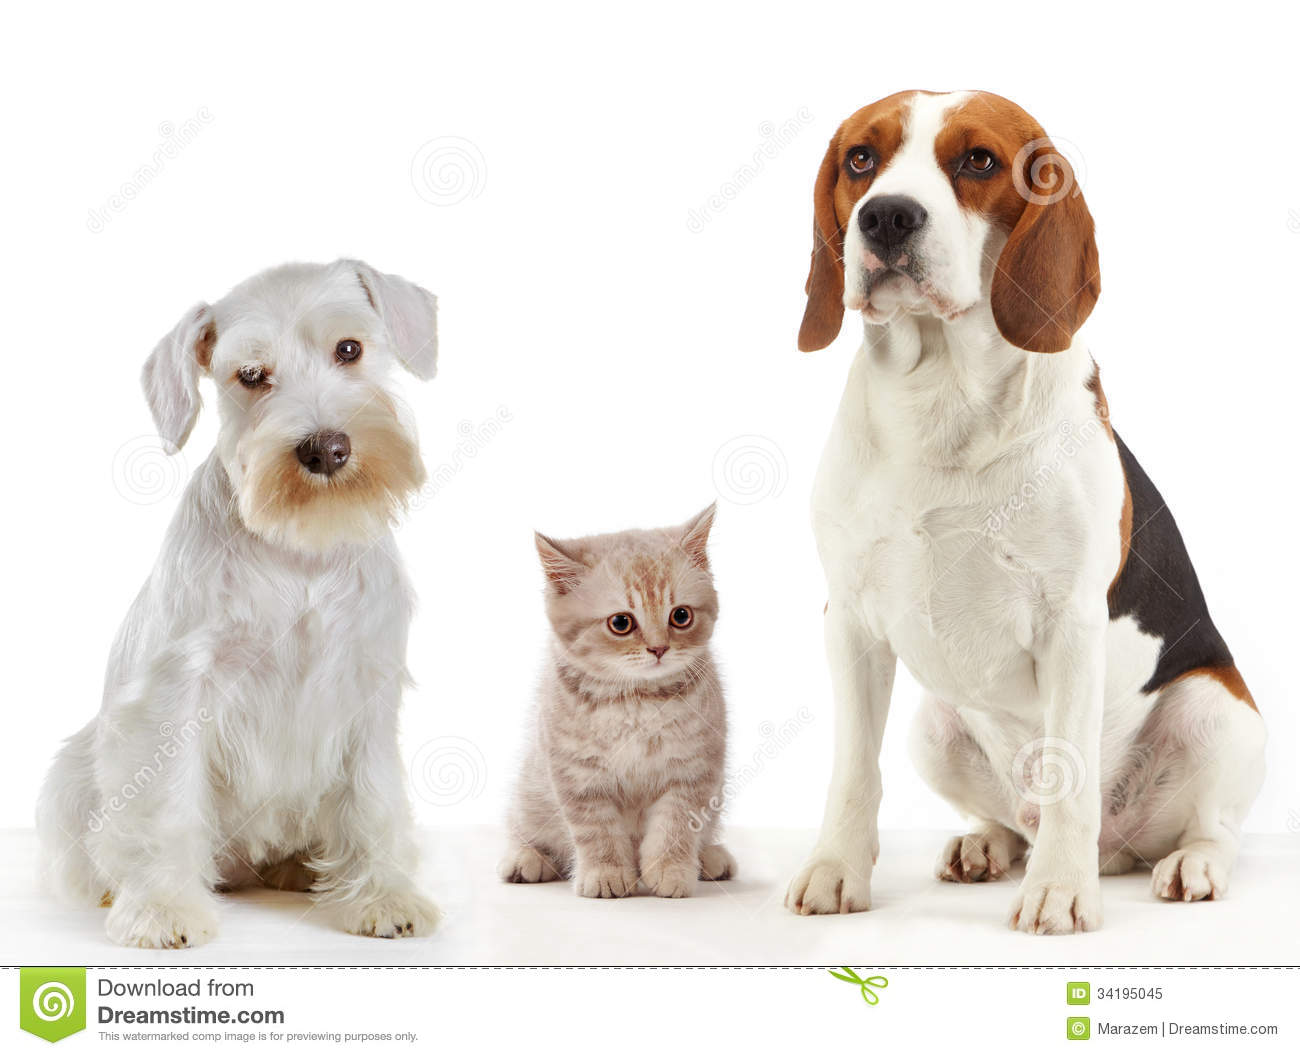 animals the domestic dog 14 of your dog's wild relatives  the common ancestor of domestic dog  play also requires the animals to react quickly to new circumstances and assess complex.